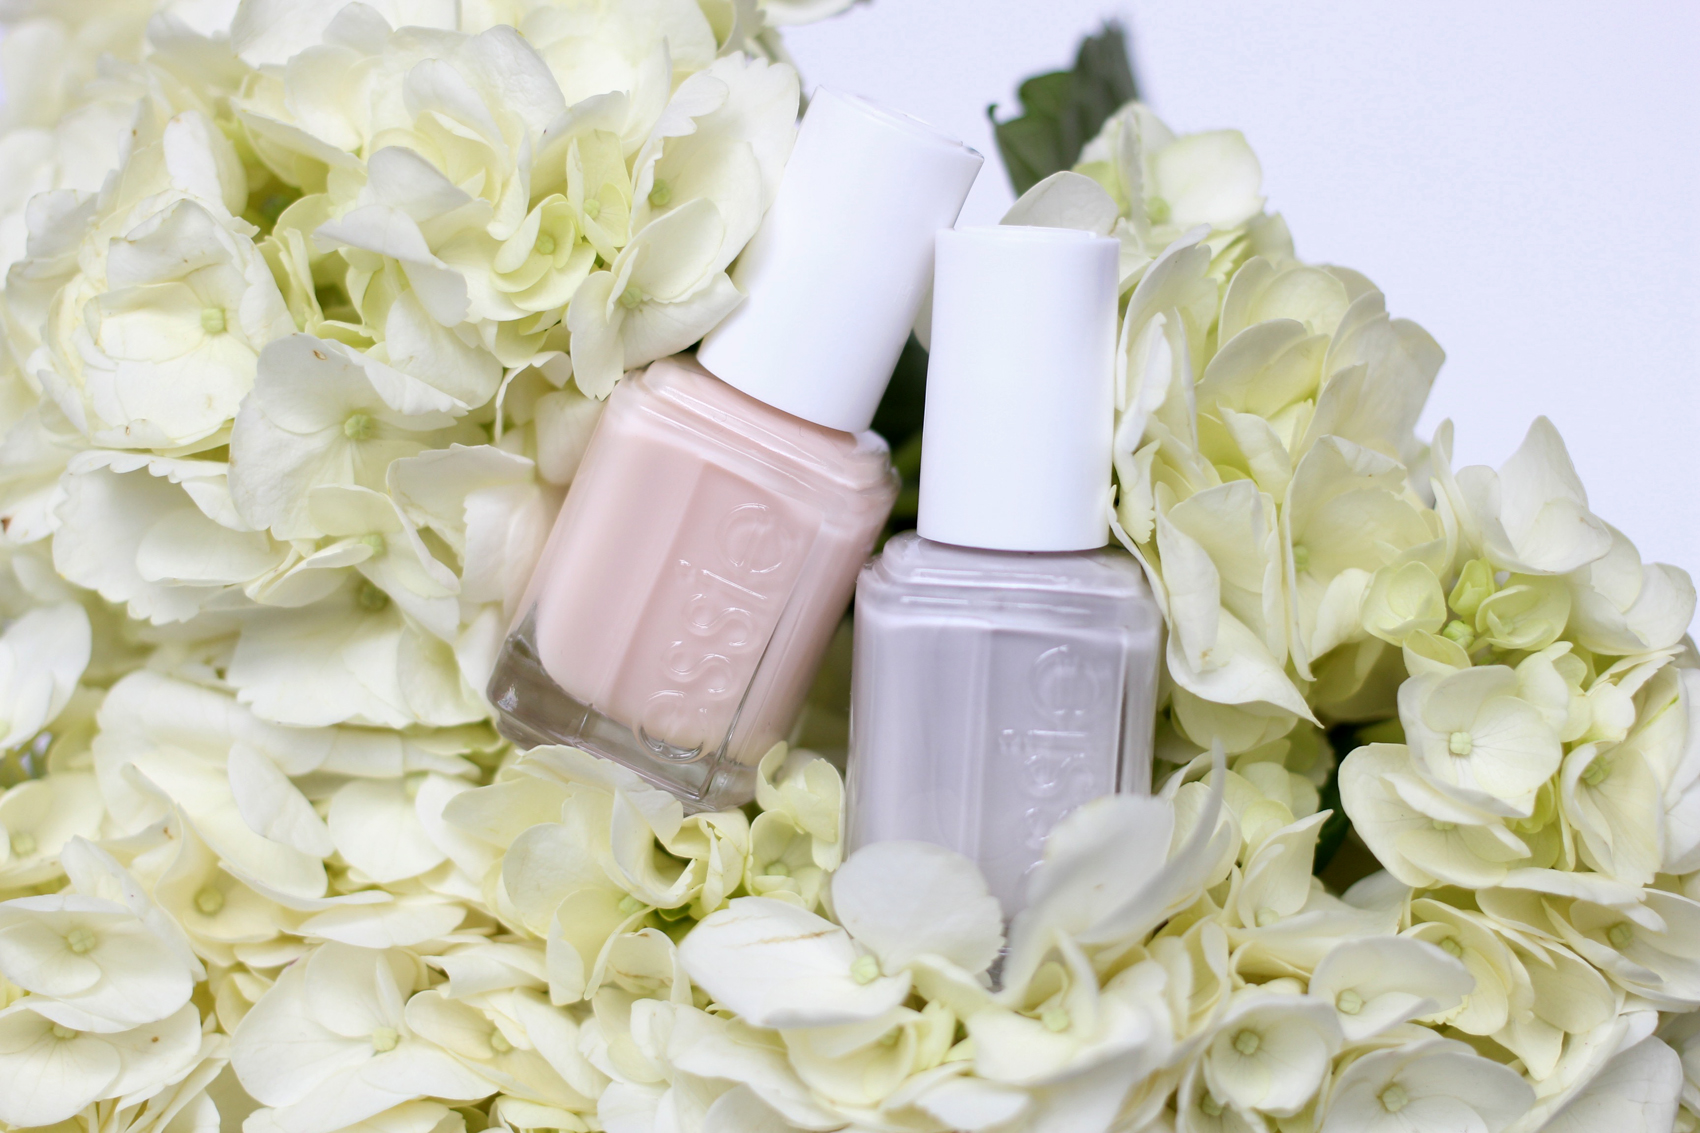 Birthday Suit (cheeky delicate nude) & Cabana Boy (ultra-cool pearly white)